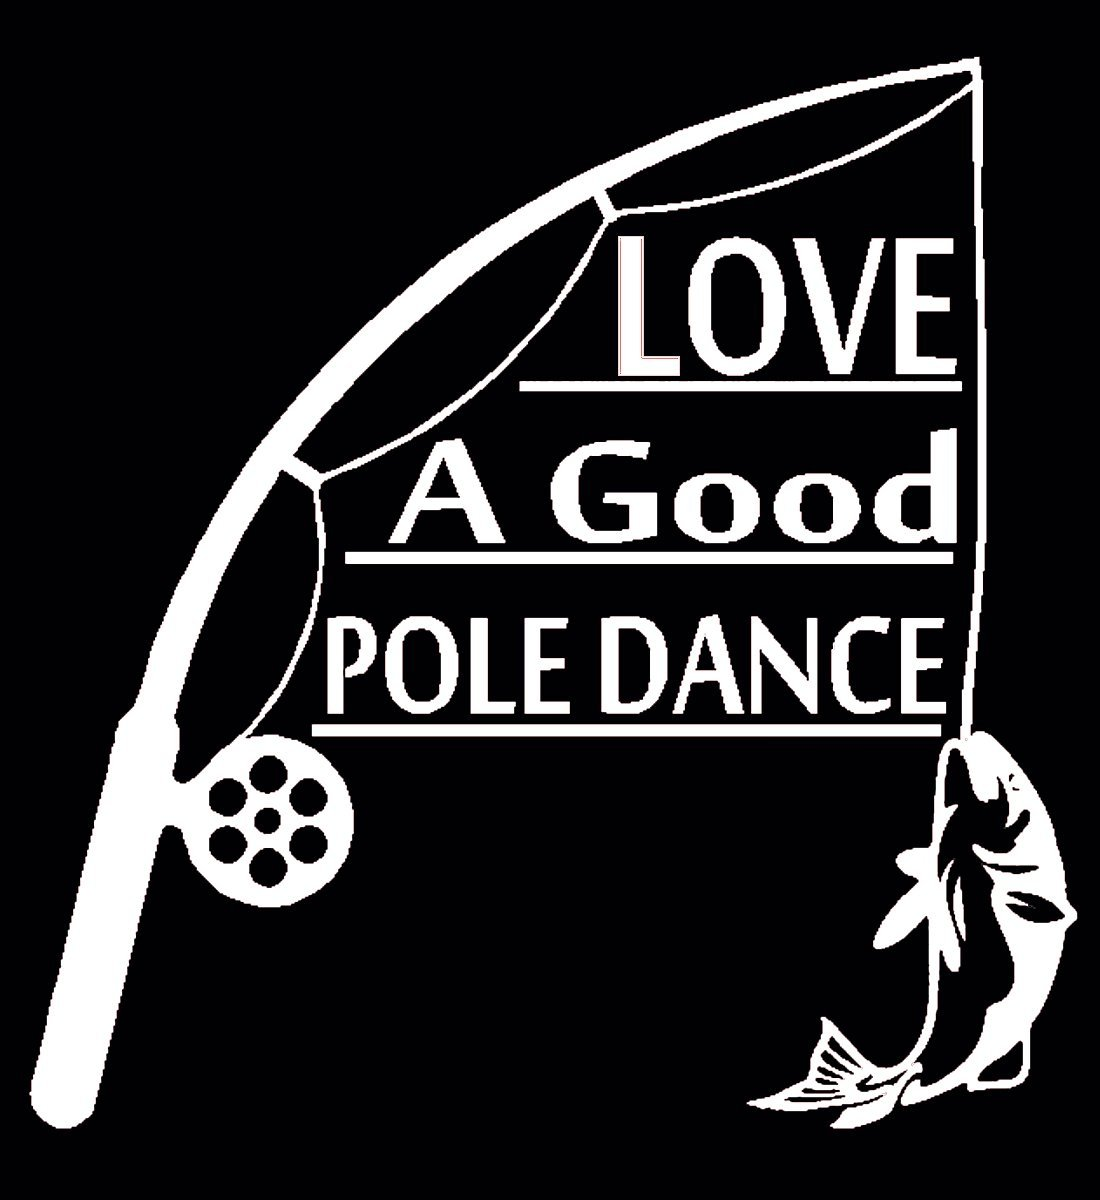 Amazon com i love a good pole dance decal funny fishing stickers please message us for custom designs h 6 by l 6 inches white automotive